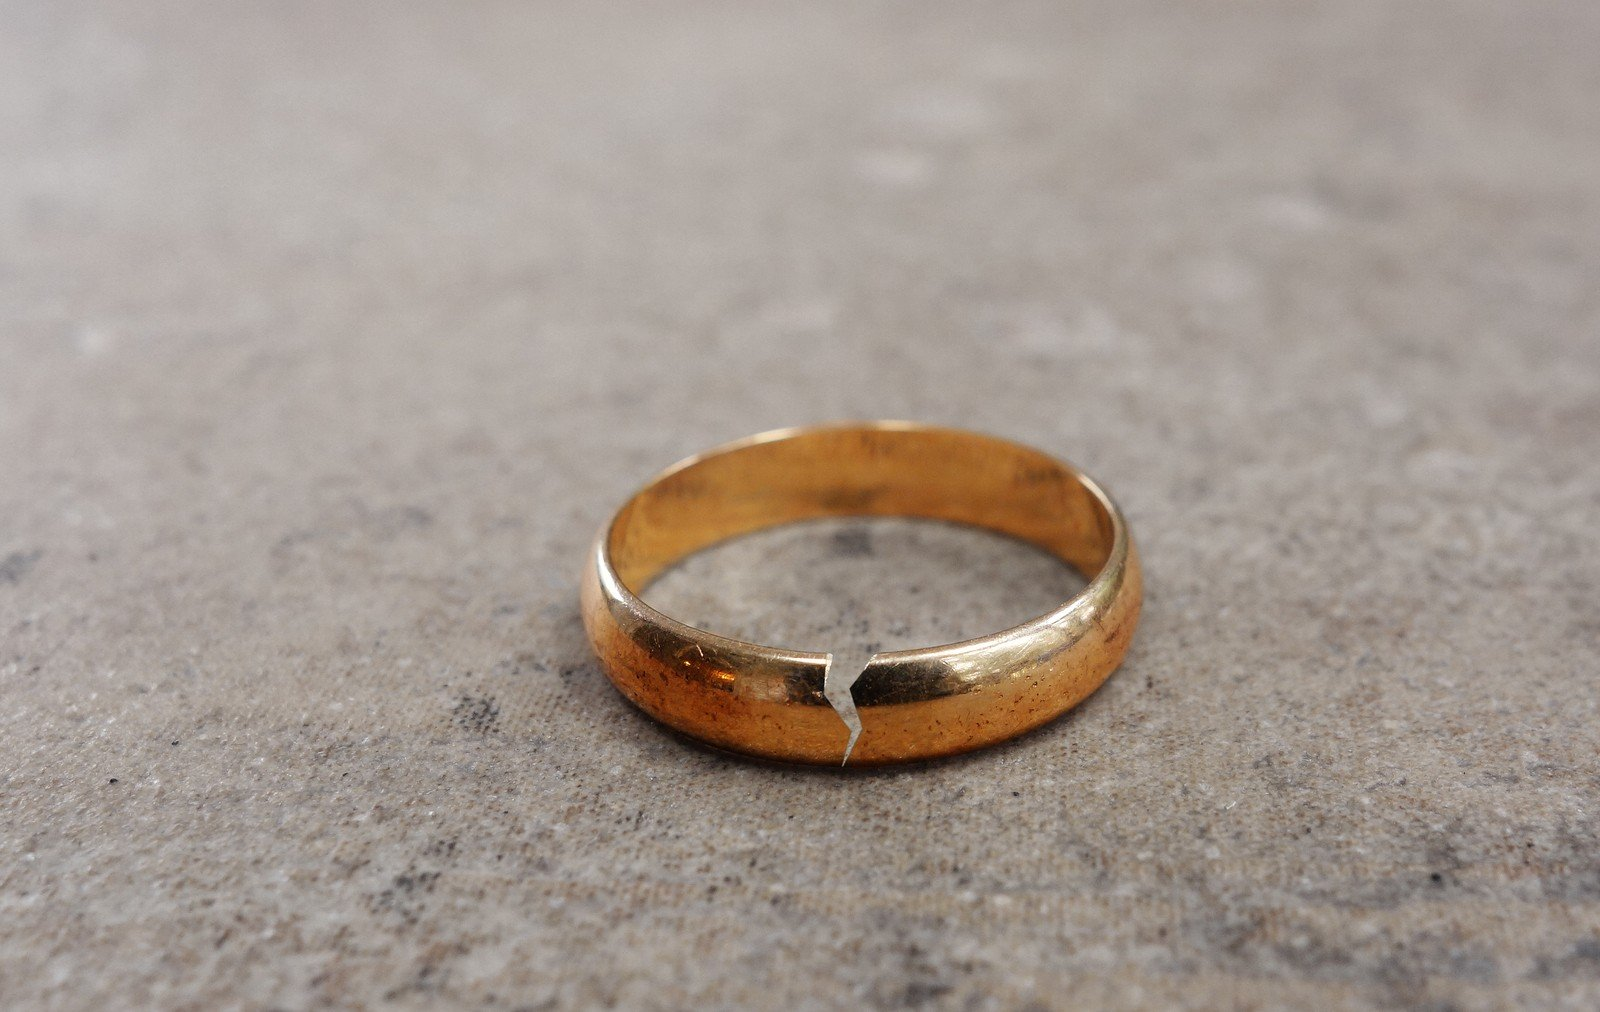 Divorce Ring